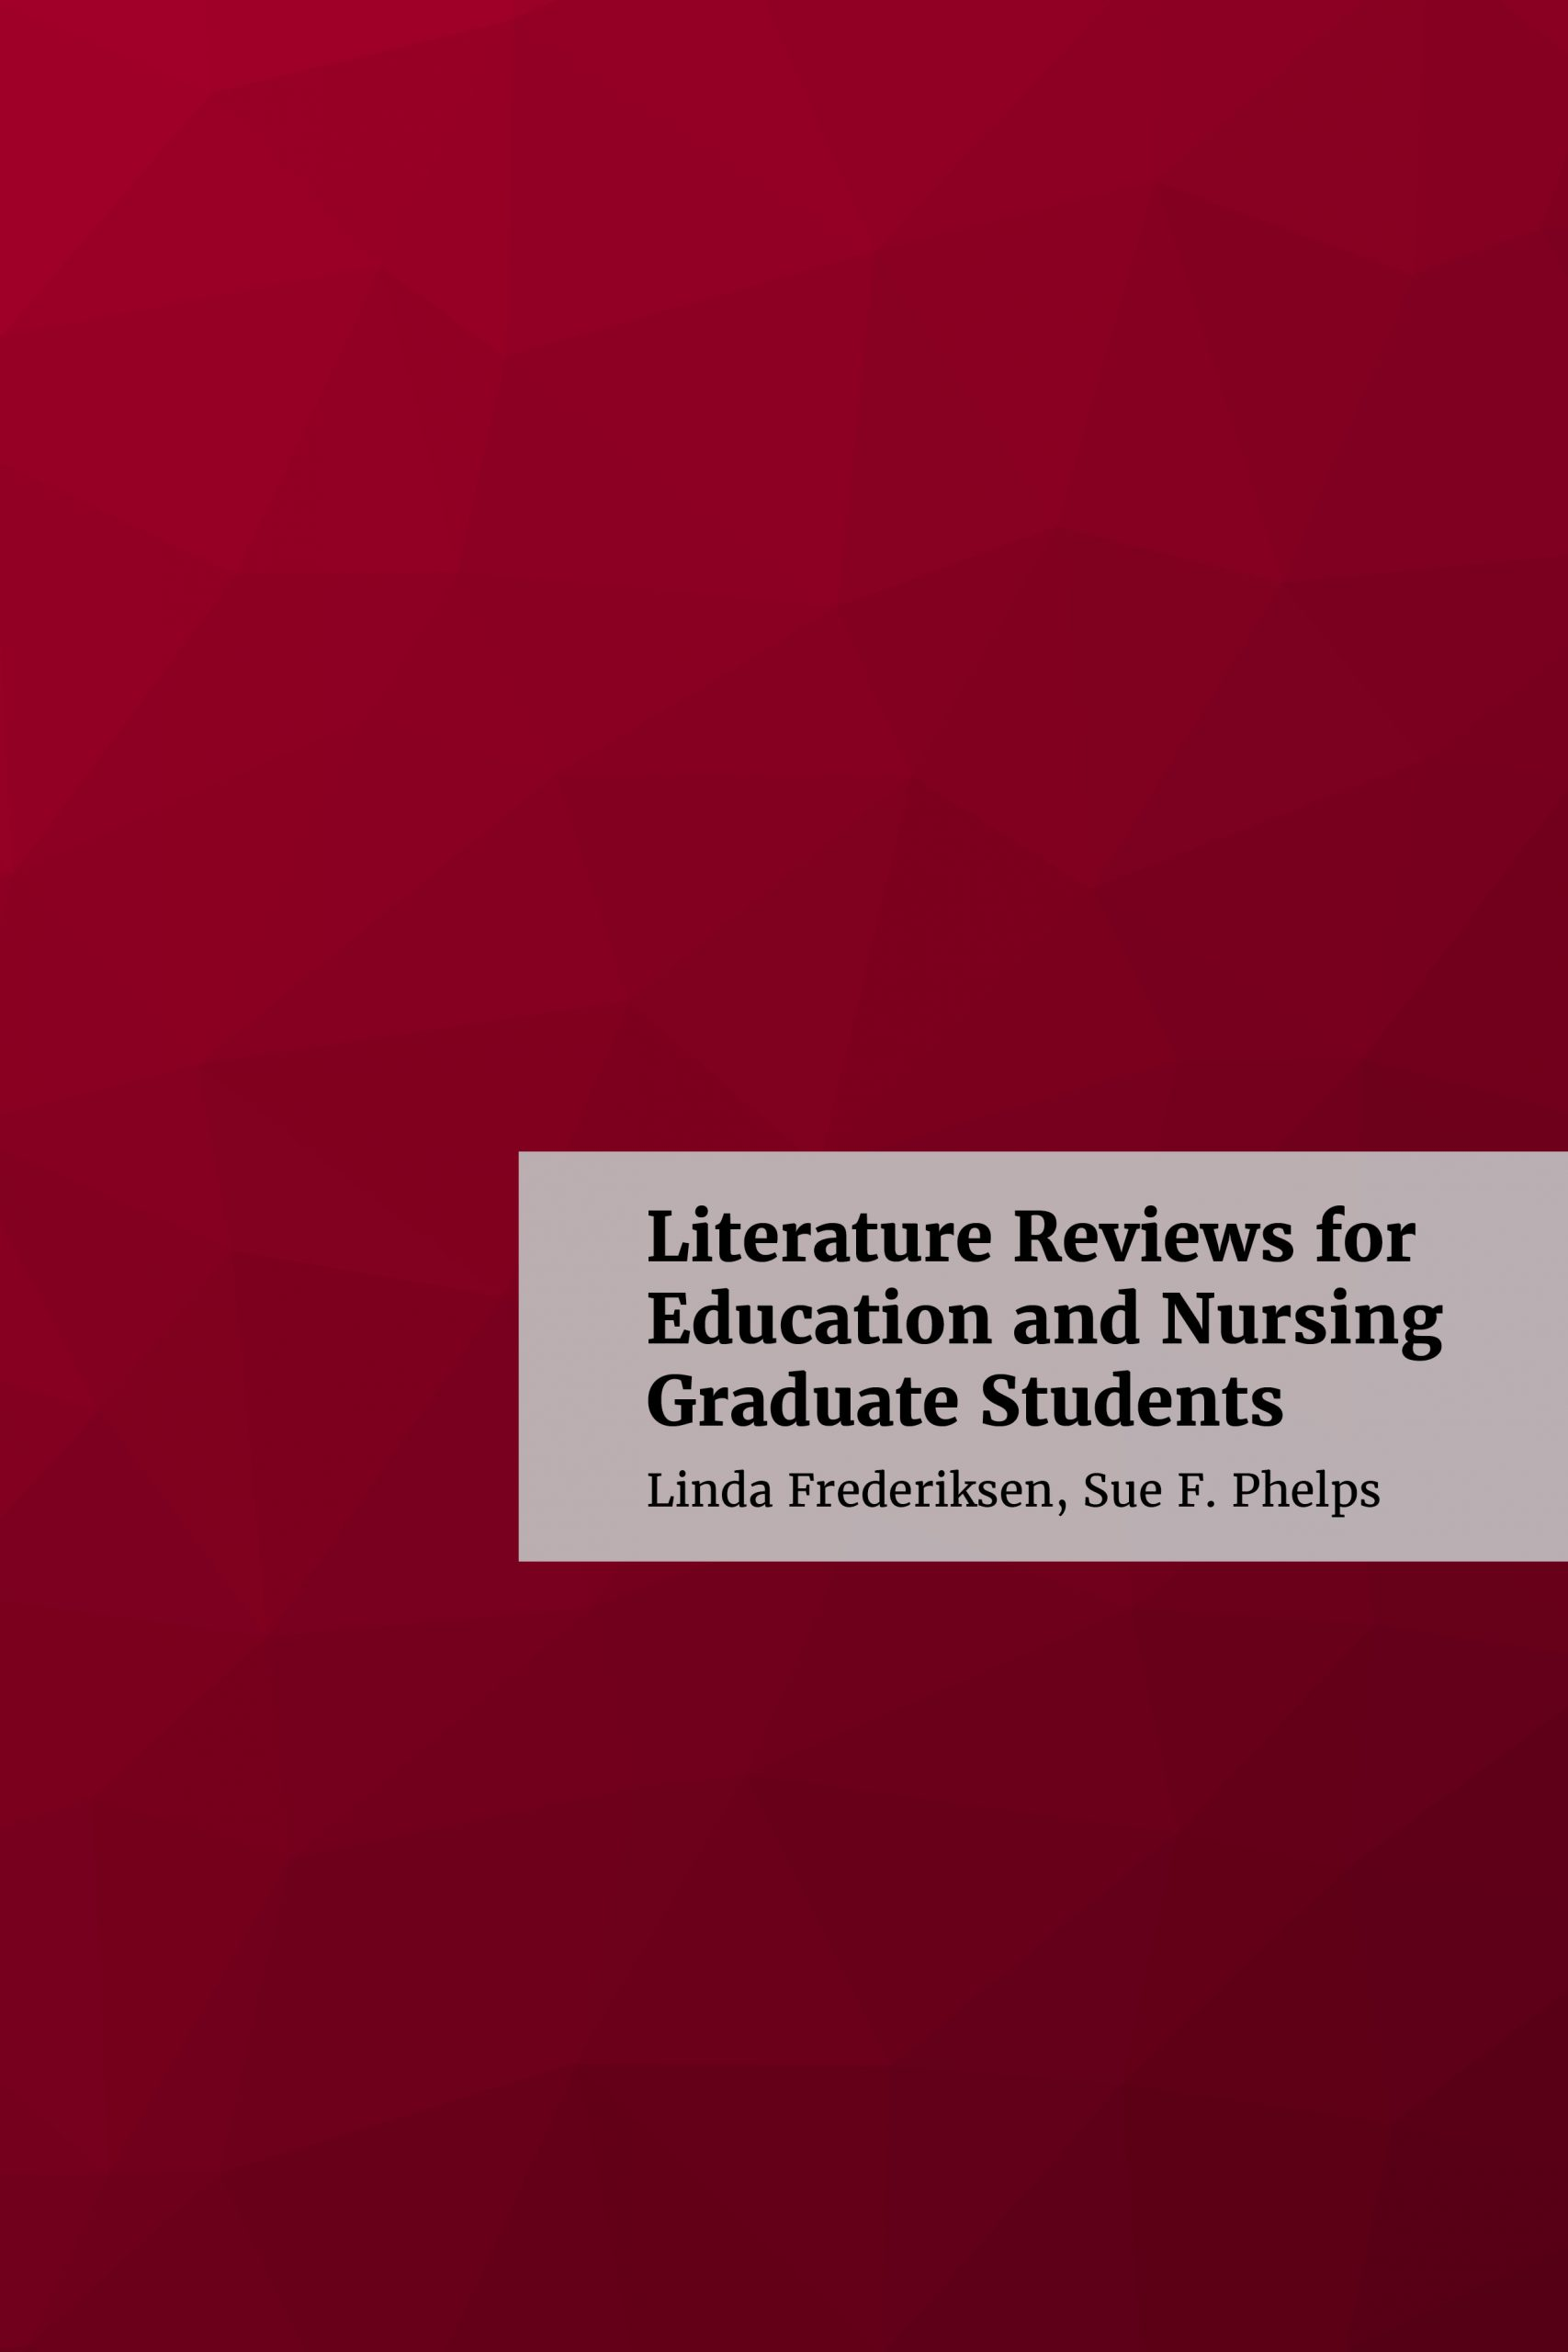 lit review book cover with title and simple red background